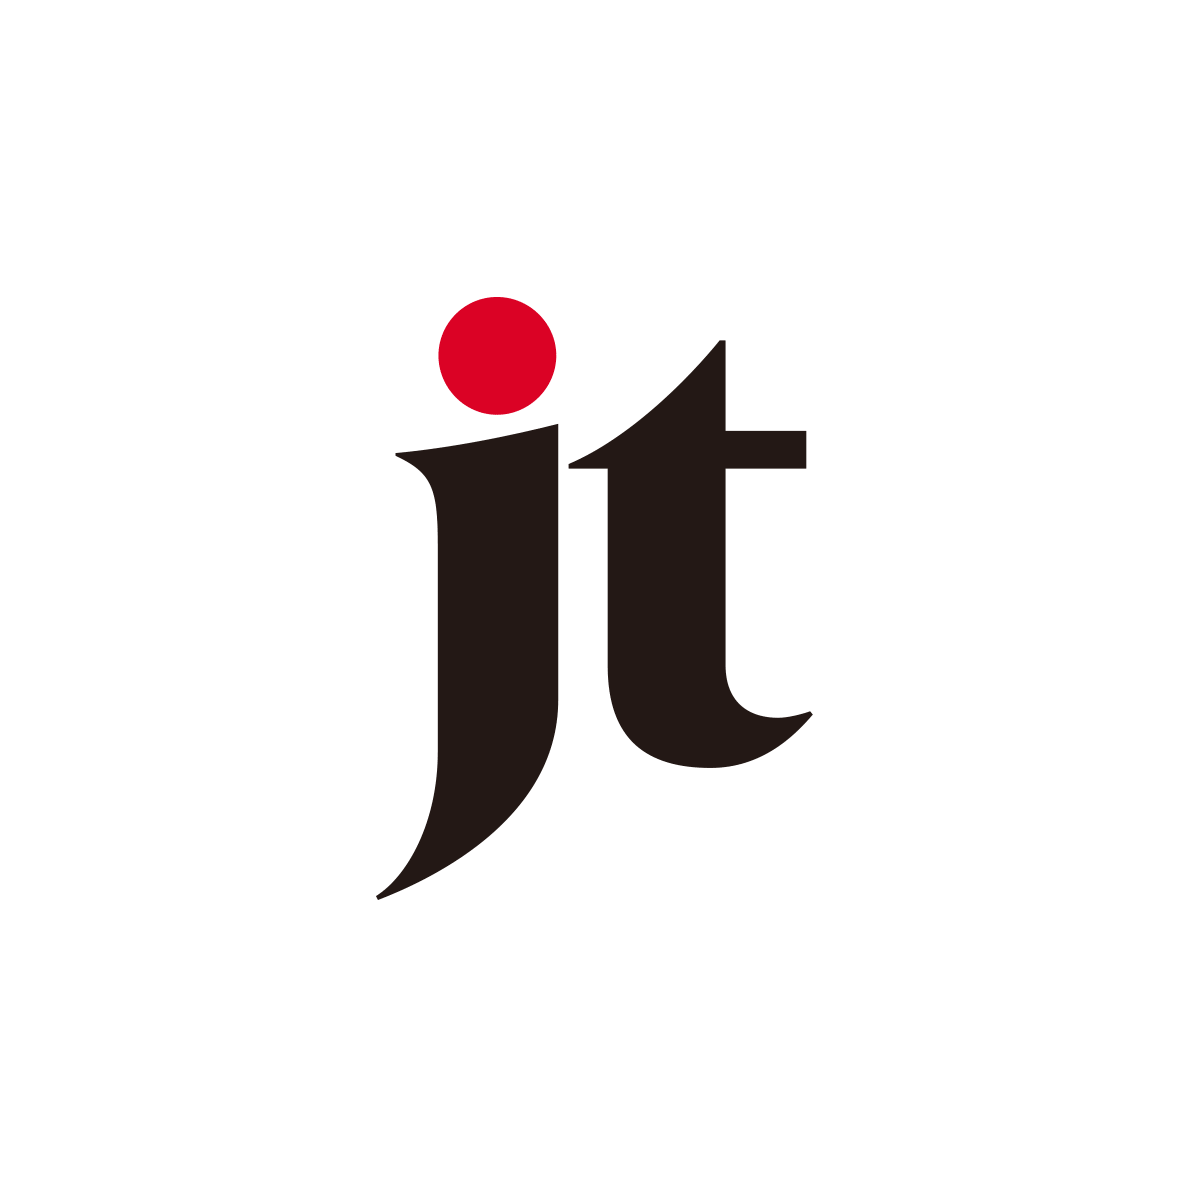 Japan lowers its age of adulthood to 18 – CNN